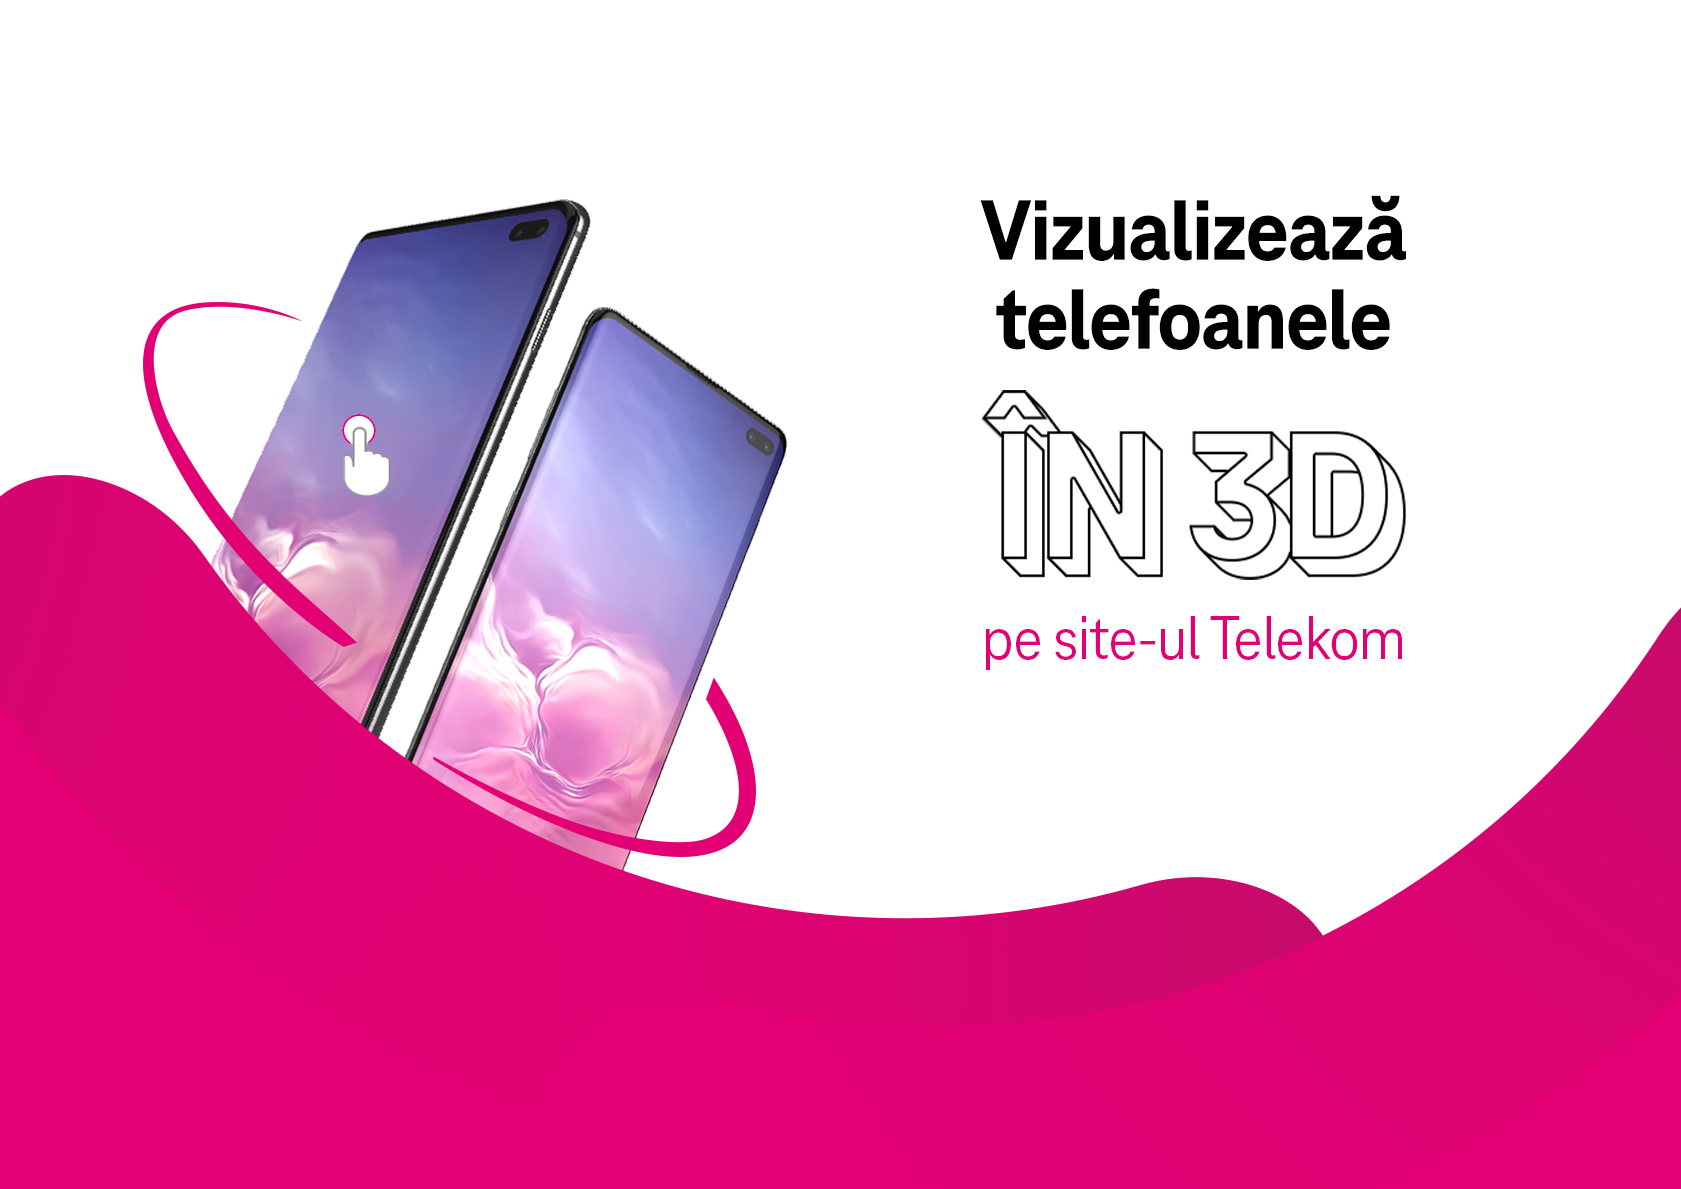 Telekom Romania introduces, for the first time, the 3D preview of the phones on www.telekom.ro